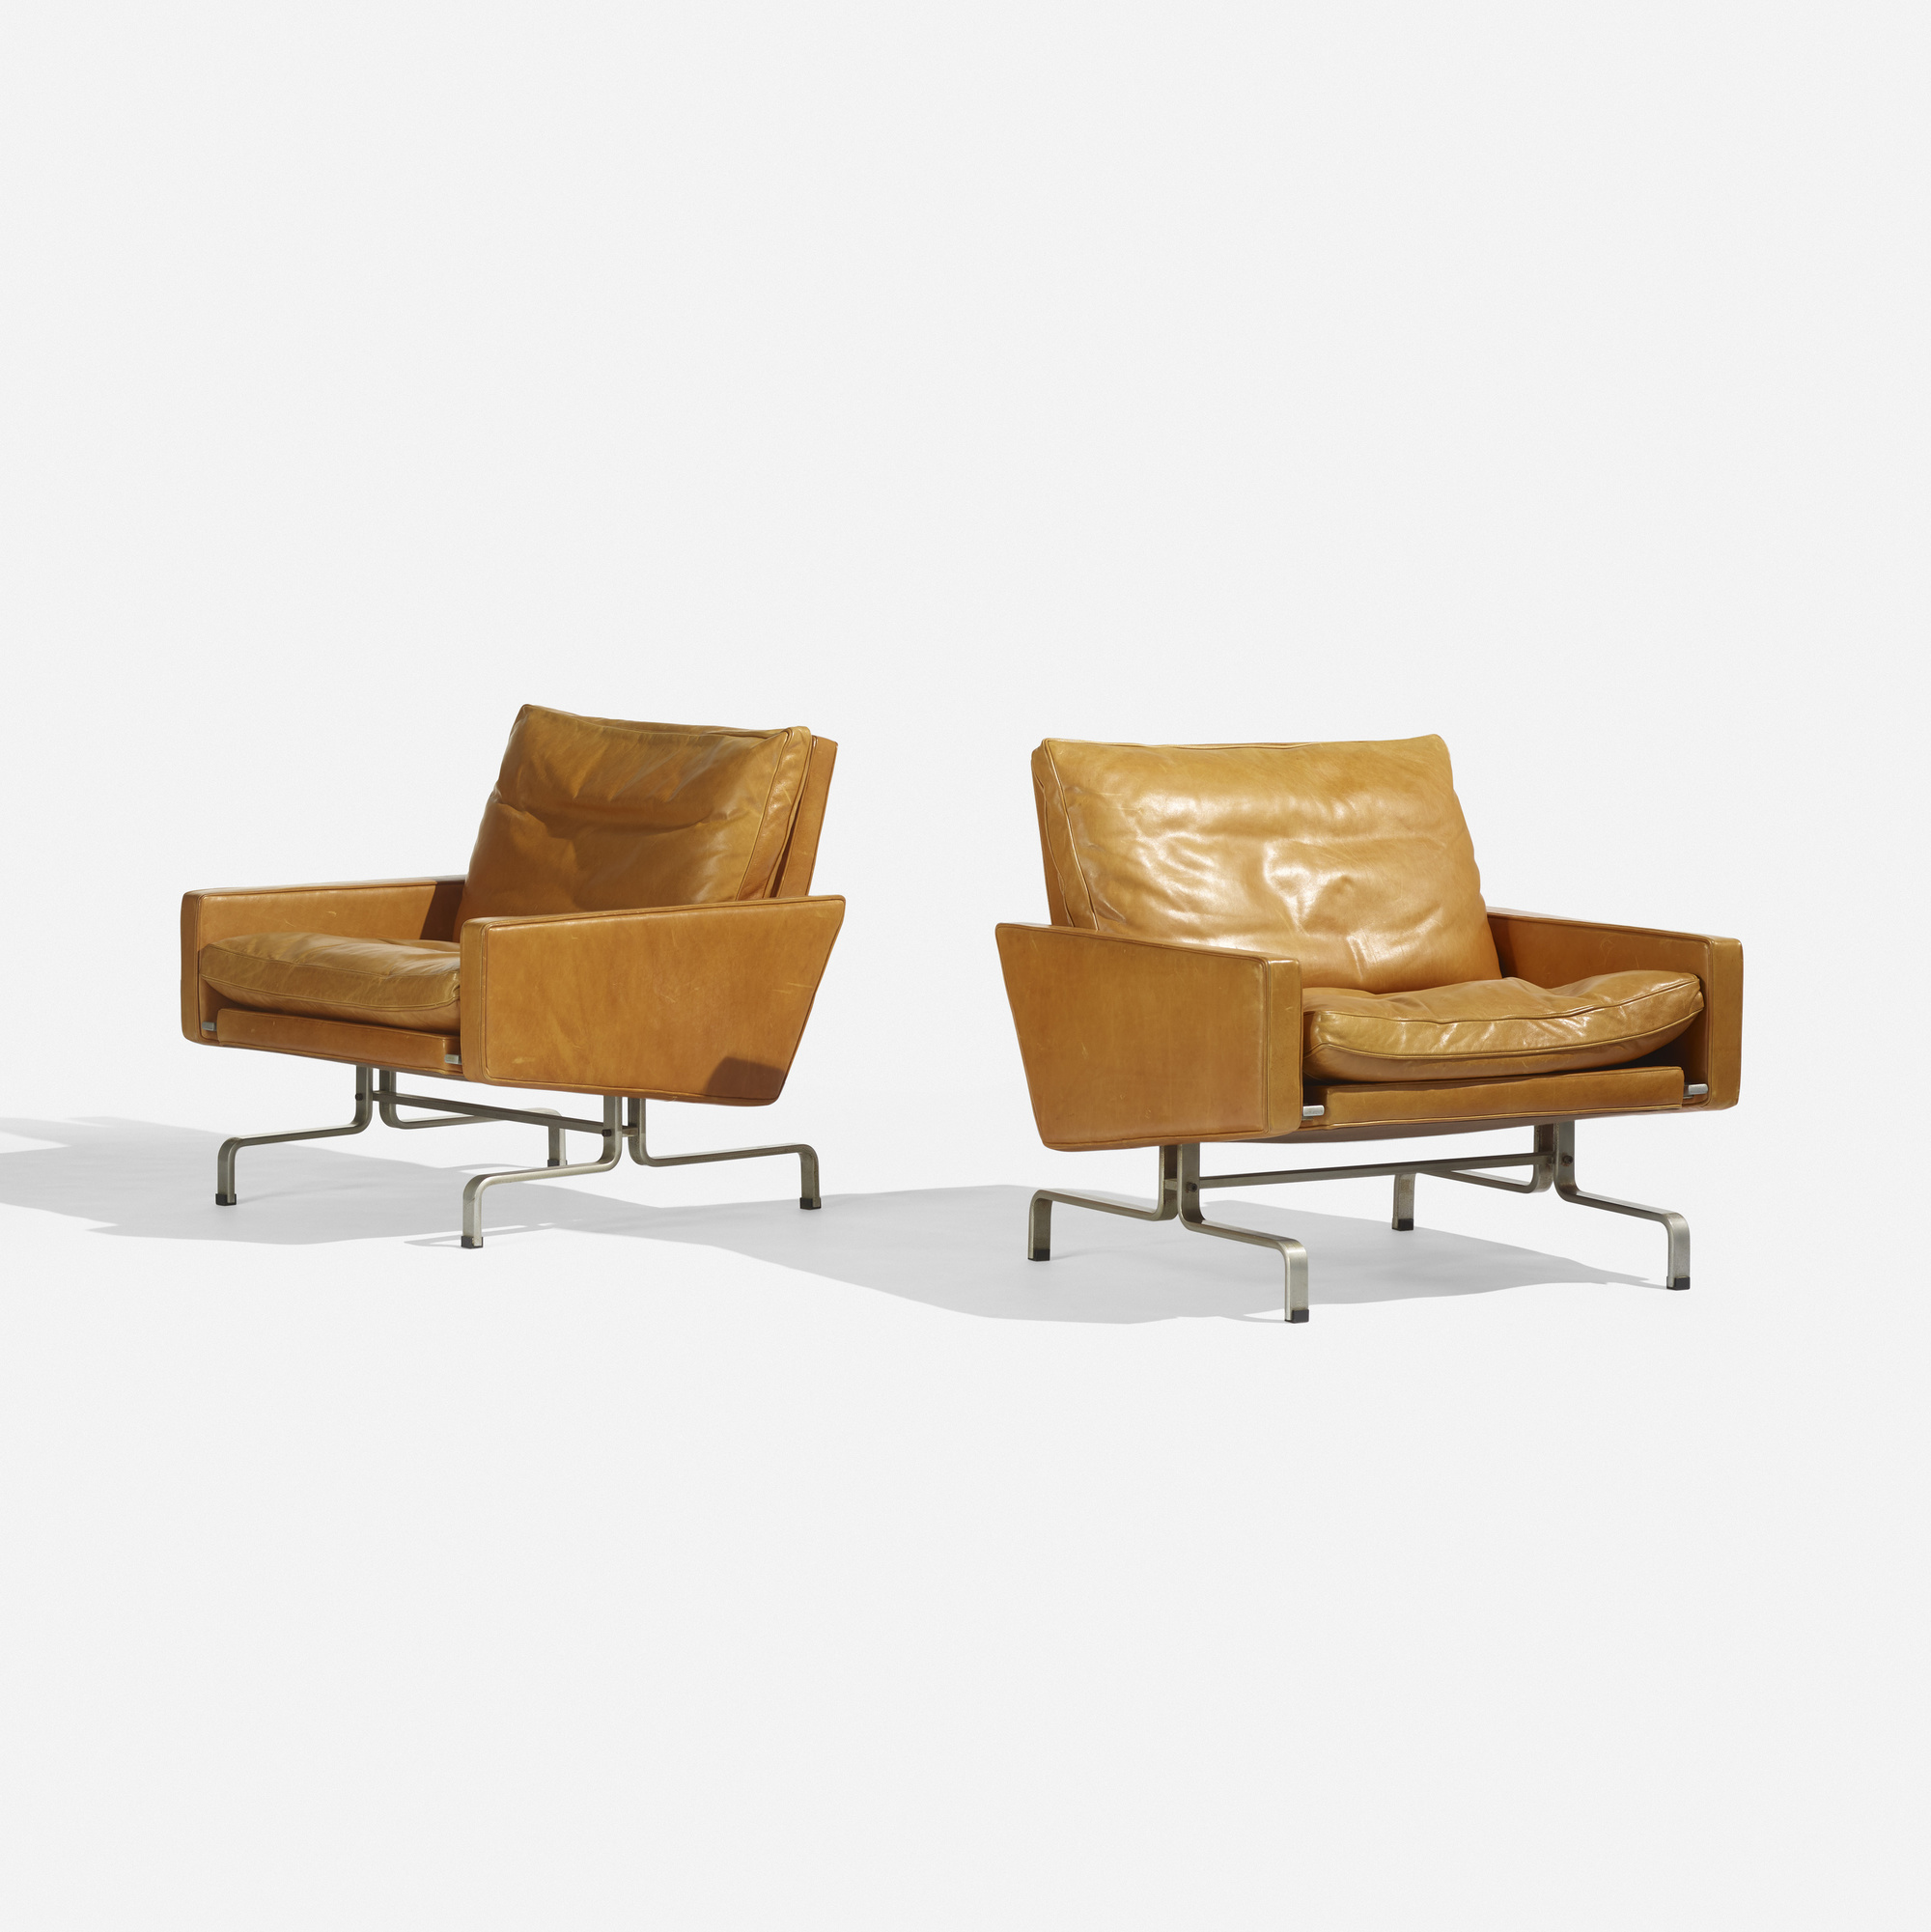 154 Poul Kjaerholm / PK 31/1 lounge chairs pair (1 of  sc 1 st  Wright Auctions & 154: POUL KJAERHOLM PK 31/1 lounge chairs pair u003c Scandinavian ...